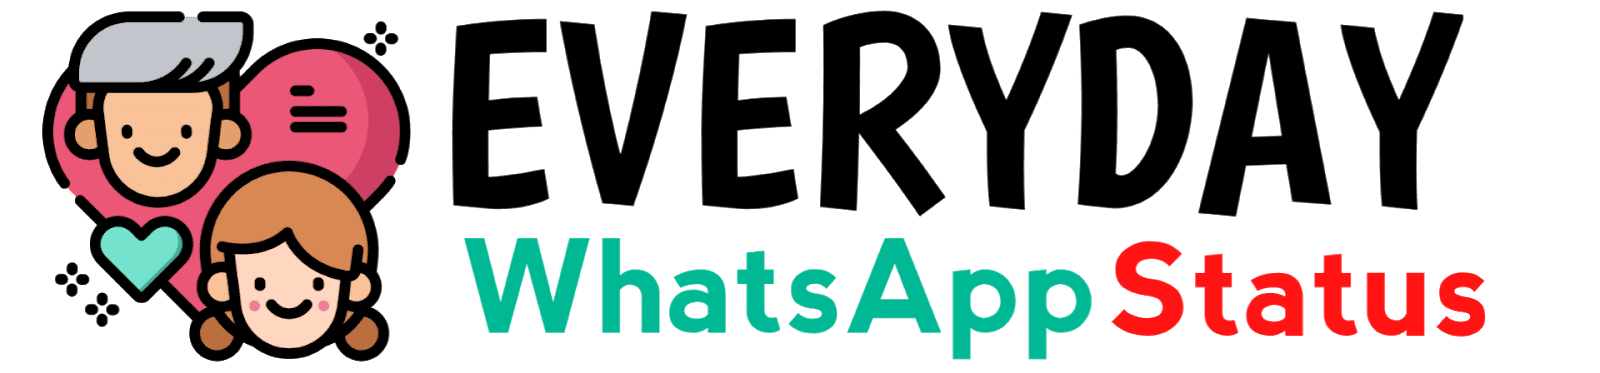 Everyday WhatsApp Status